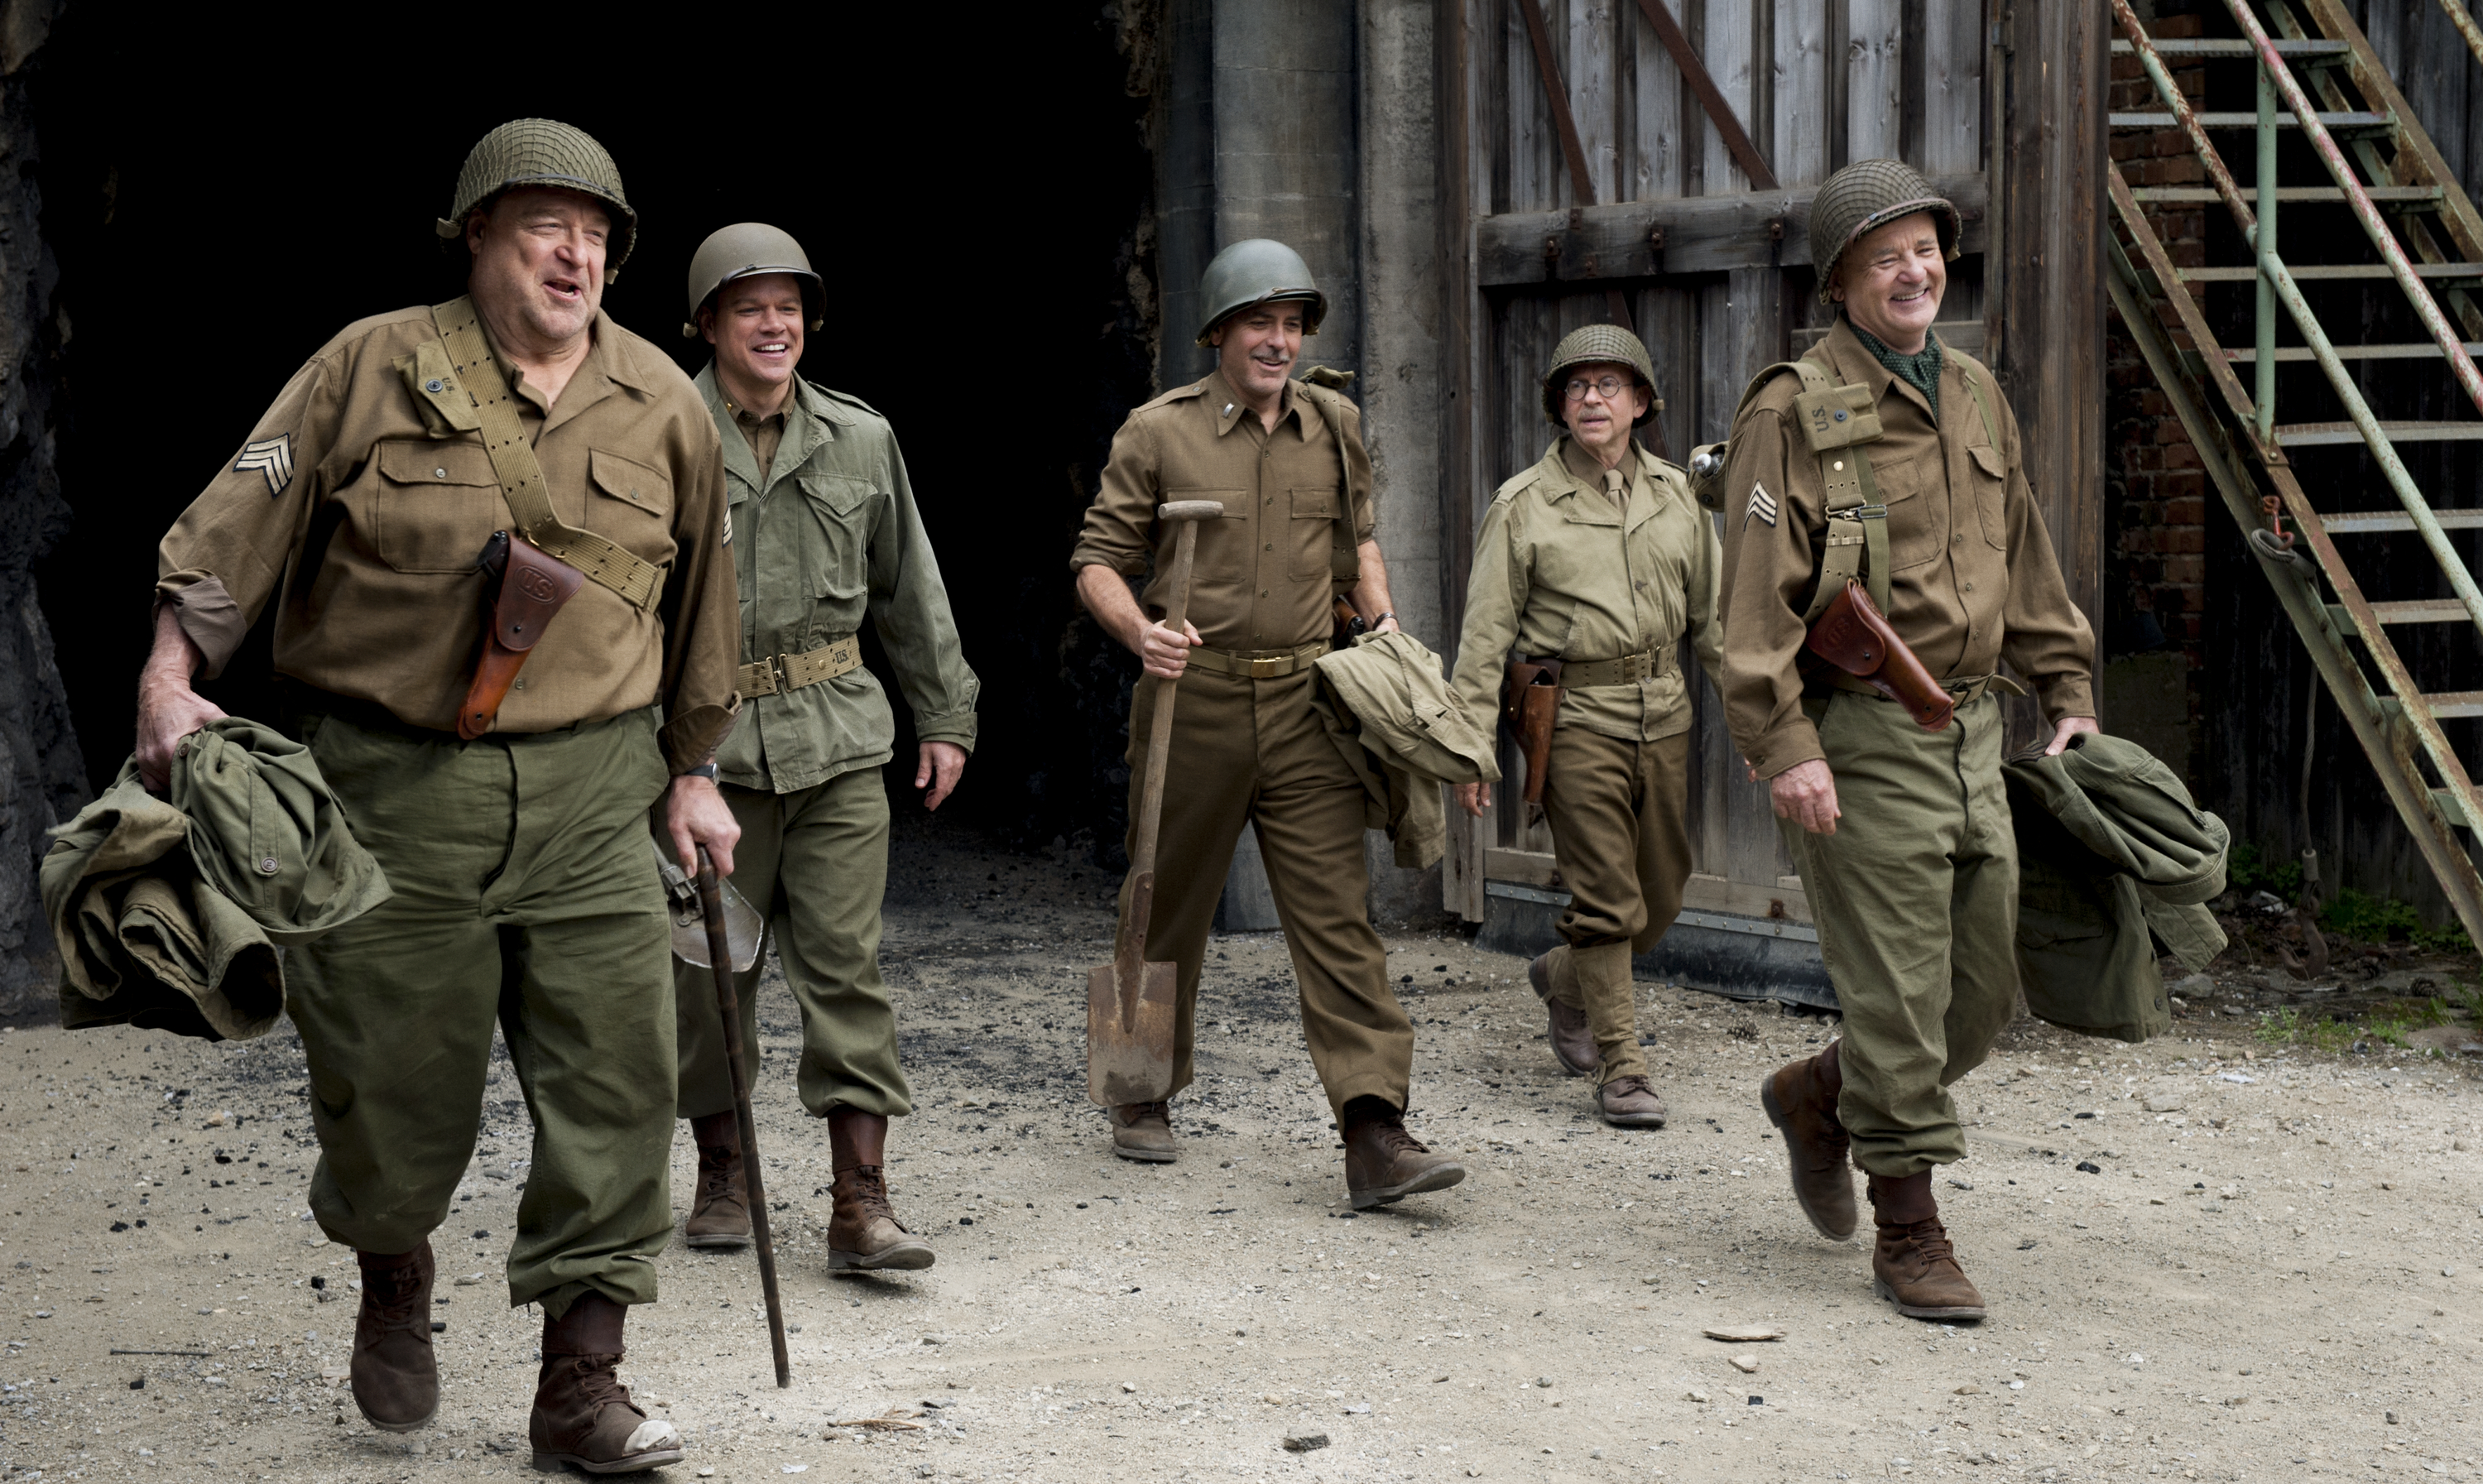 John Goodman (l to r), Matt Damon, George Clooney, Bob Balaban and Bill Murray leave a mine containing stolen artwork in The Monuments Men. (Photo: Sony Pictures)